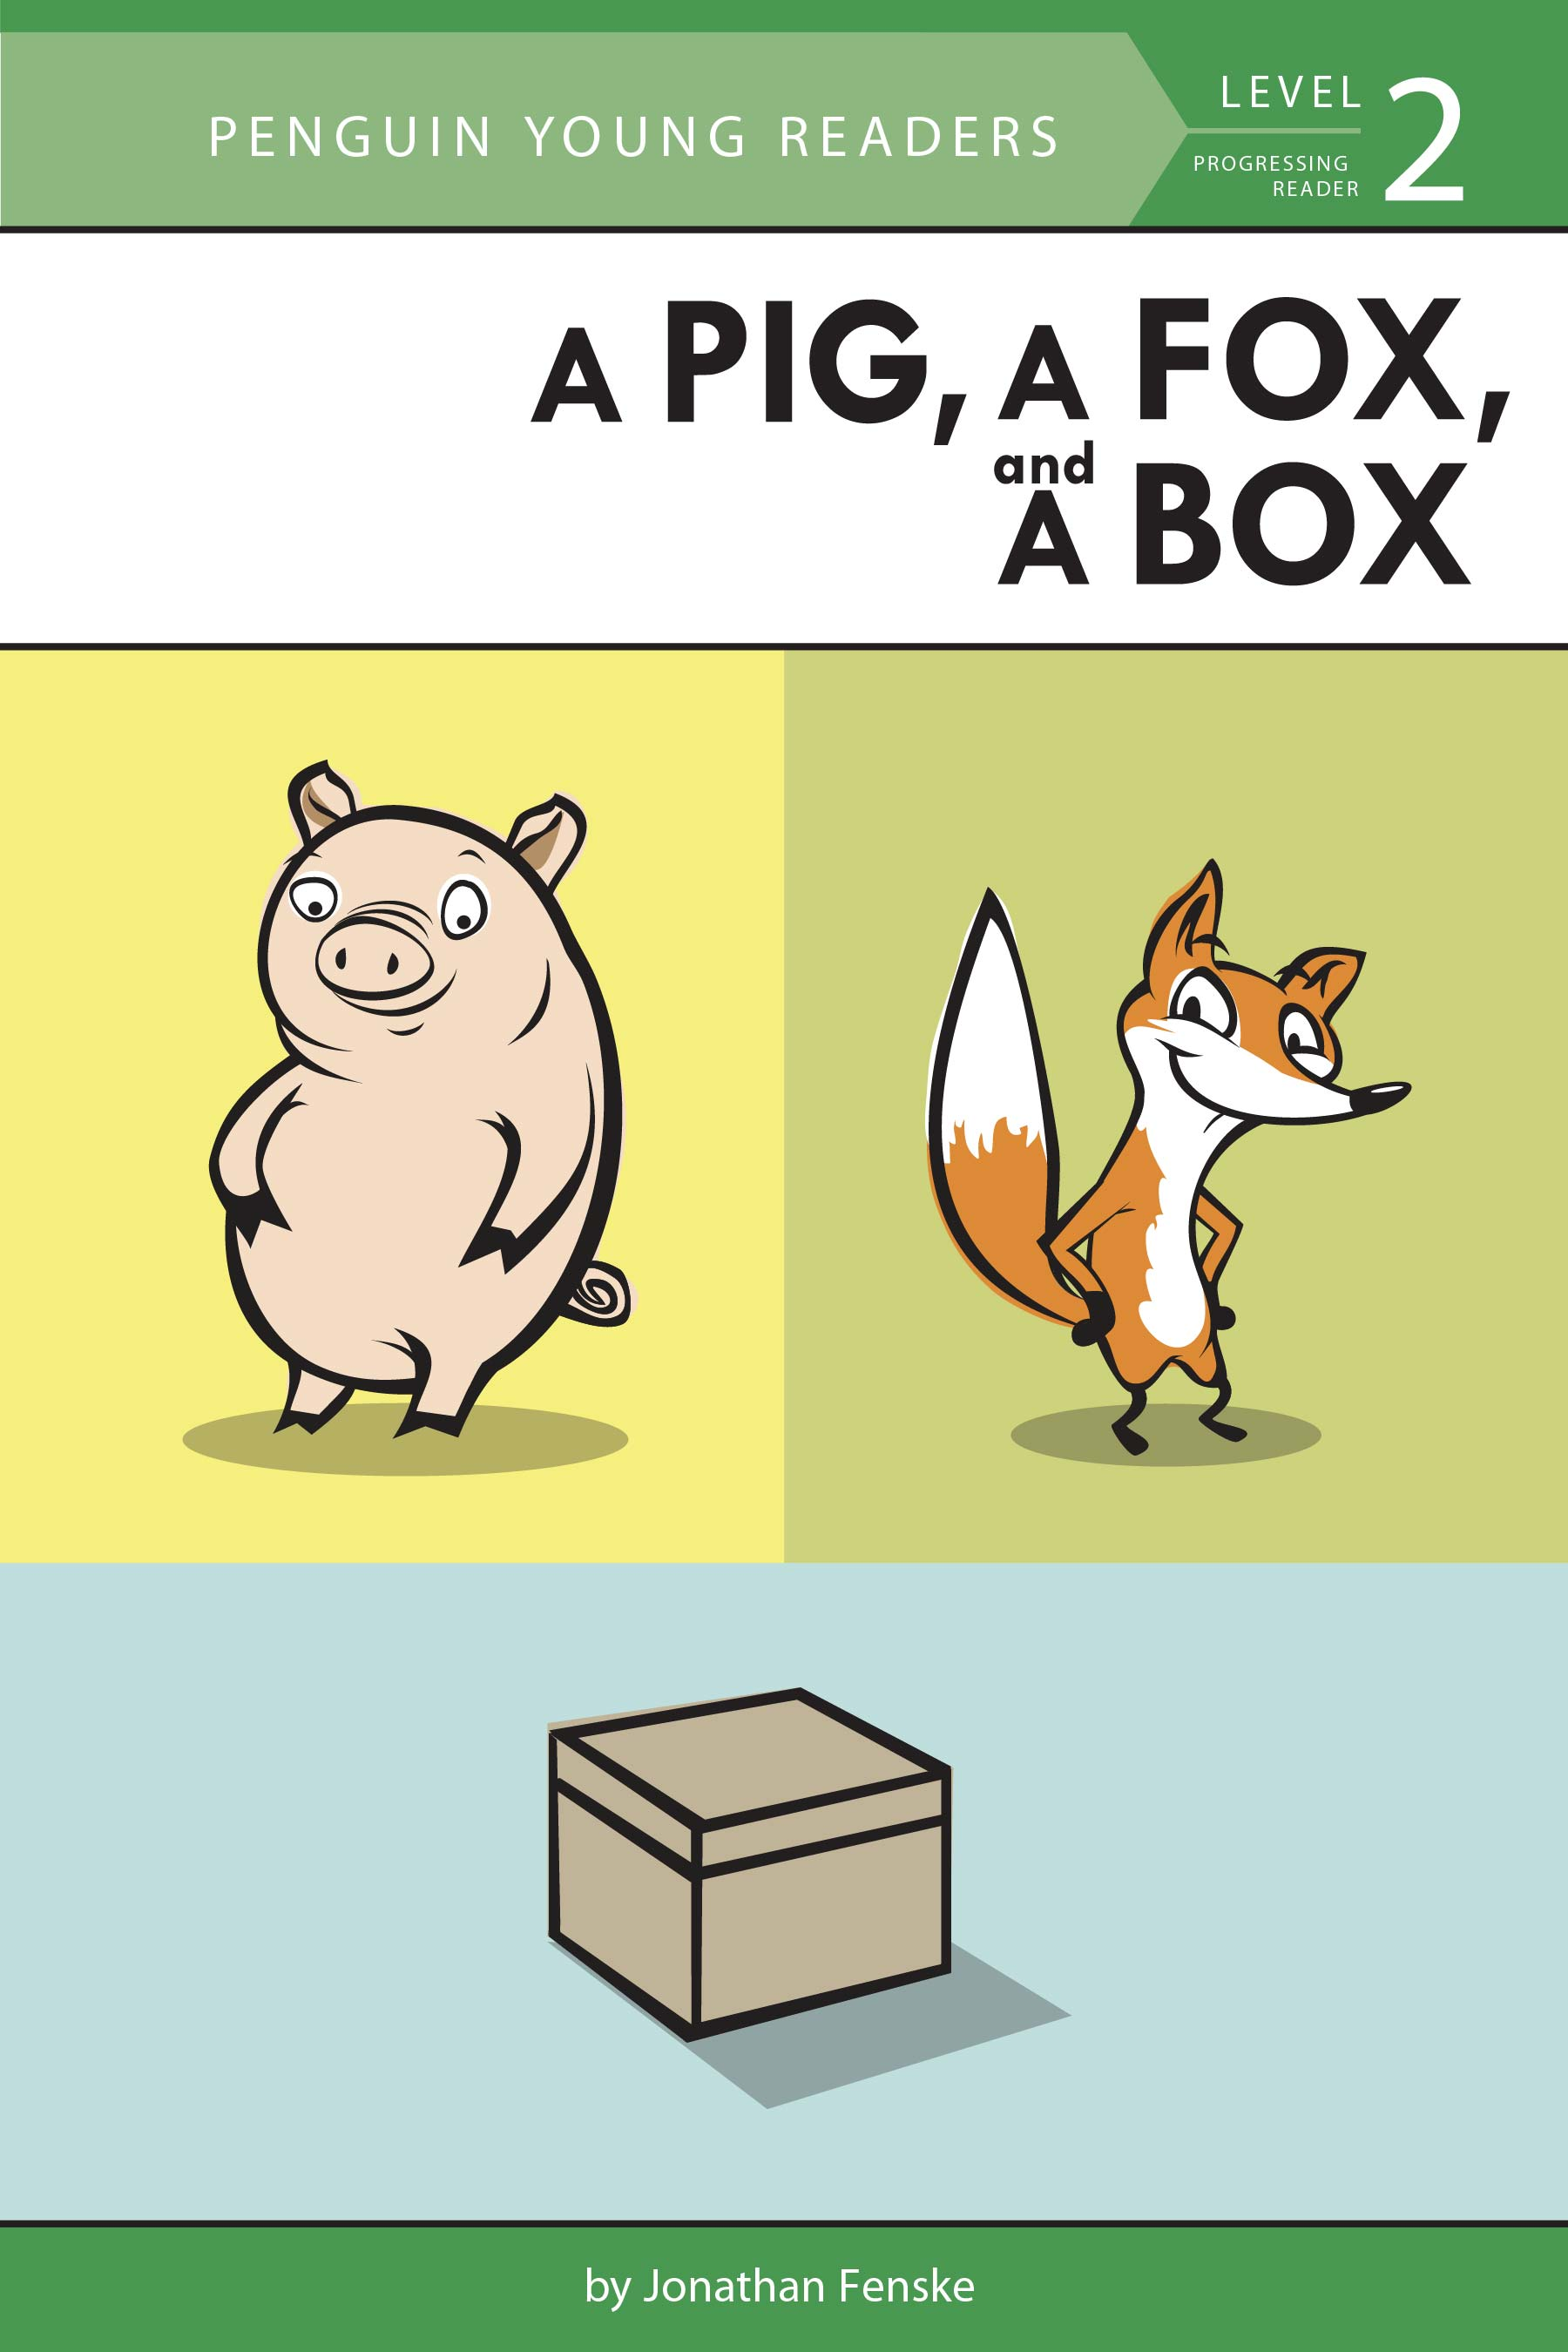 An image of the cover of A Pig, A Fox and A Box by Jonathan Fenske